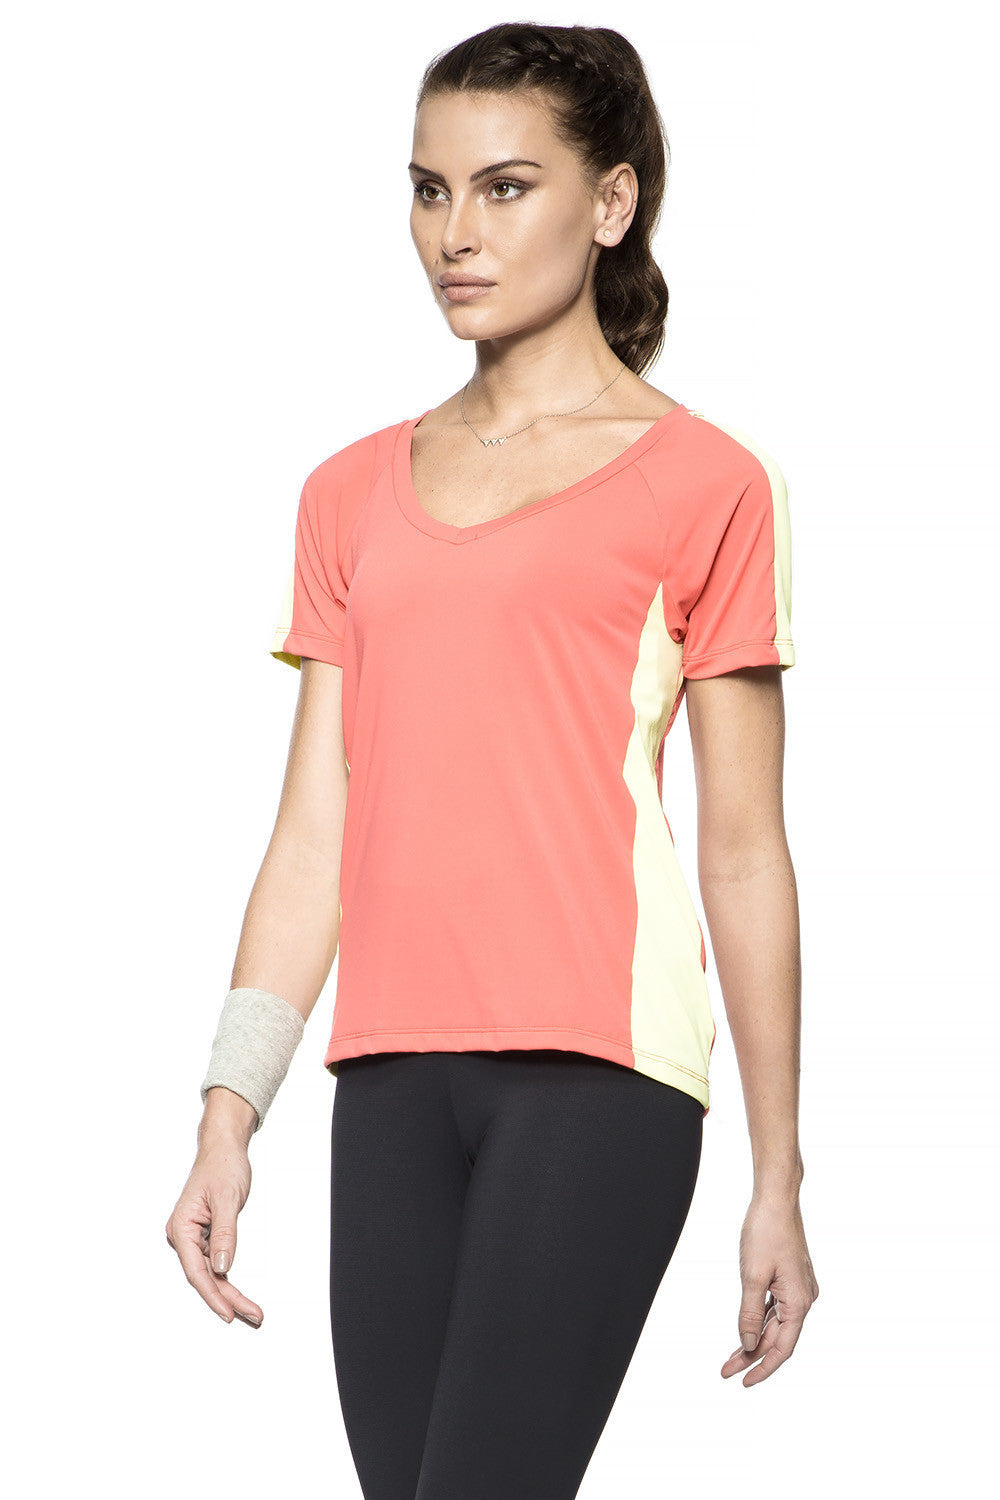 Action Fit Top